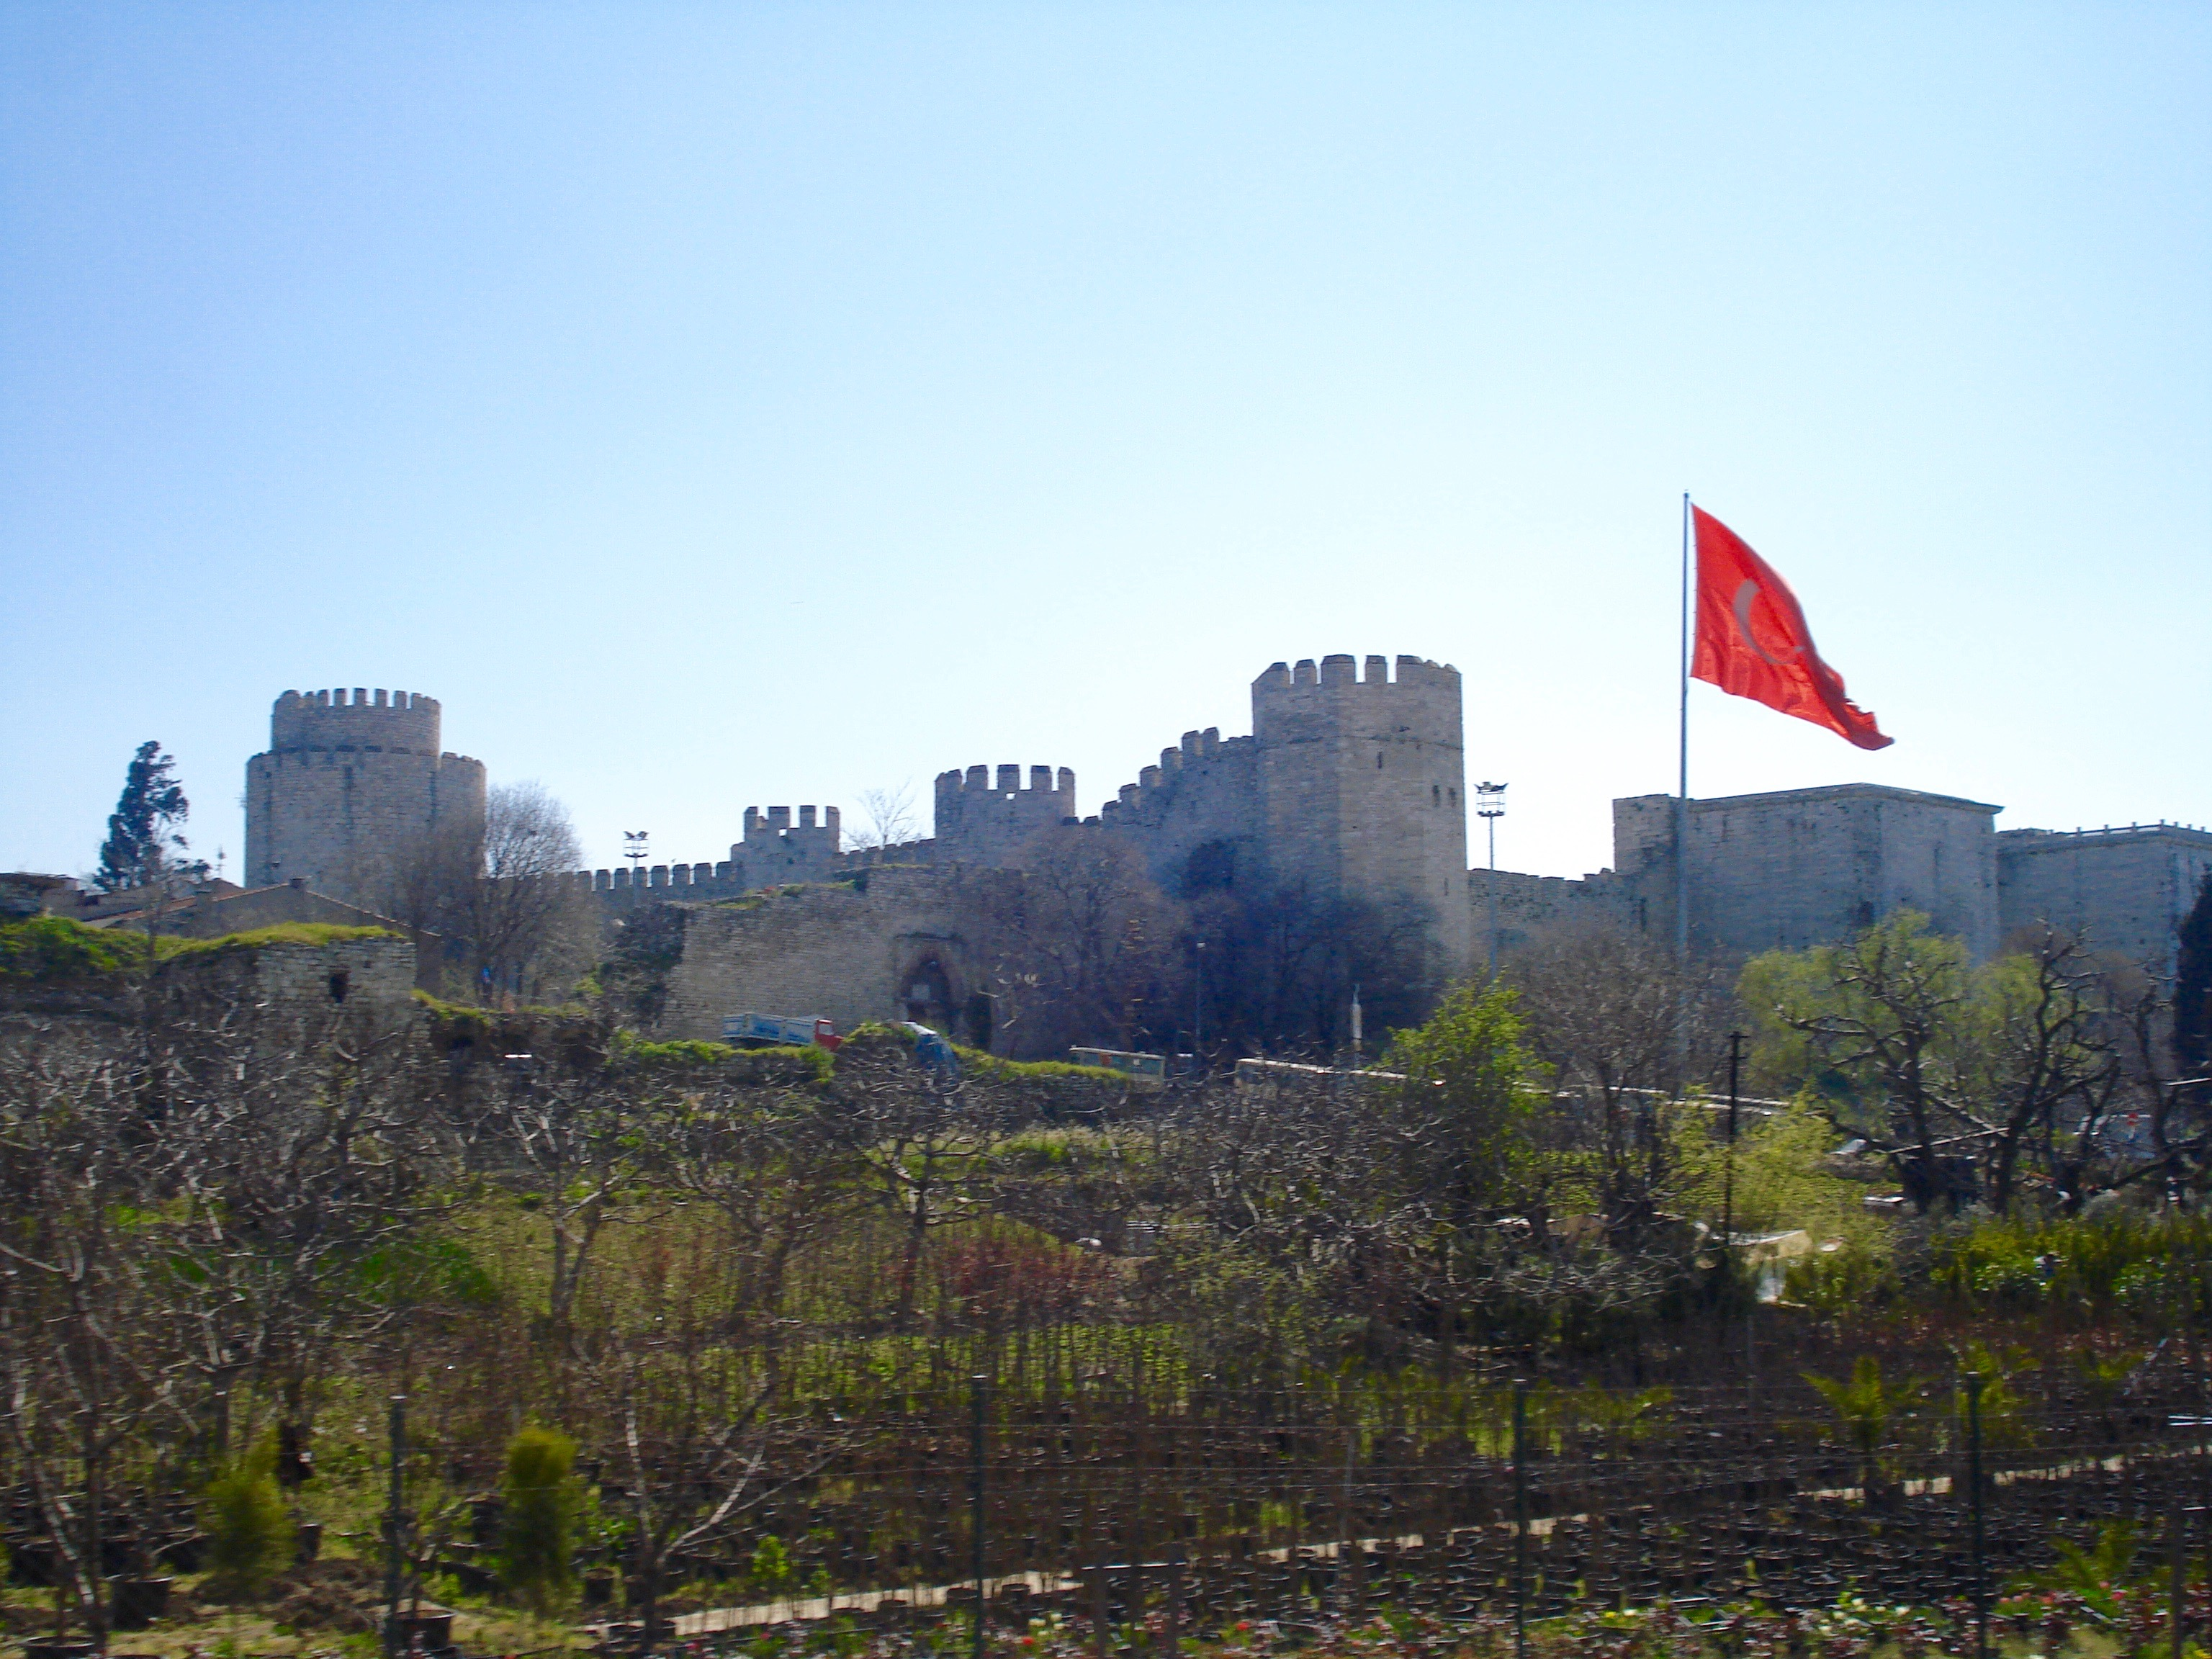 Istanbul medieval castle on a hilltop